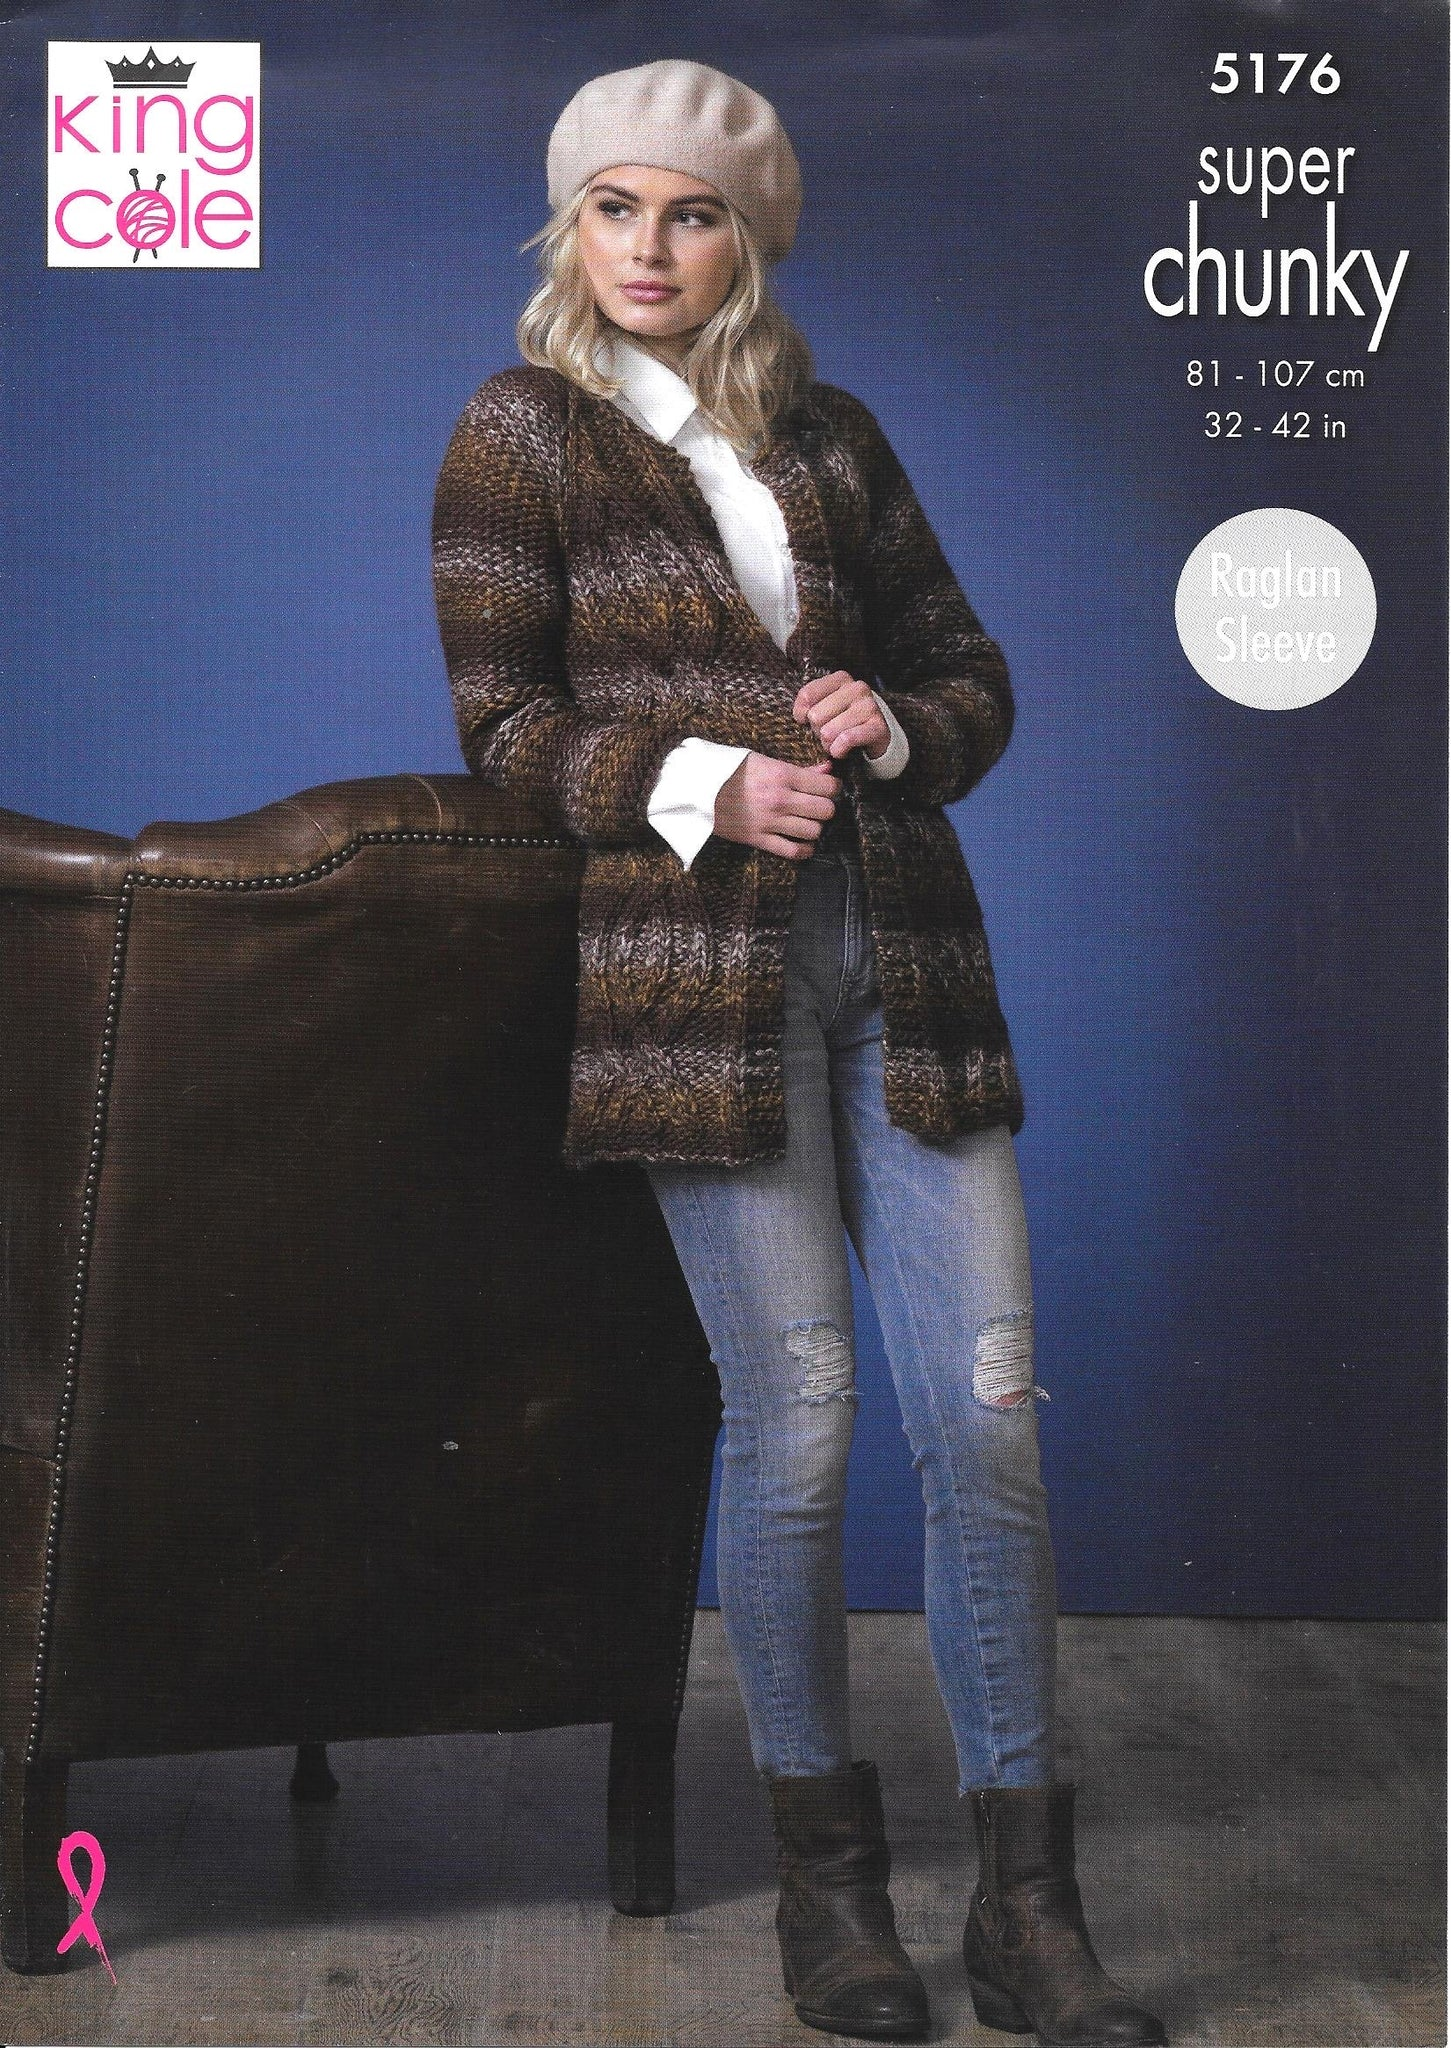 5176 King Cole super chunky ladies short and long jacket knitting pattern